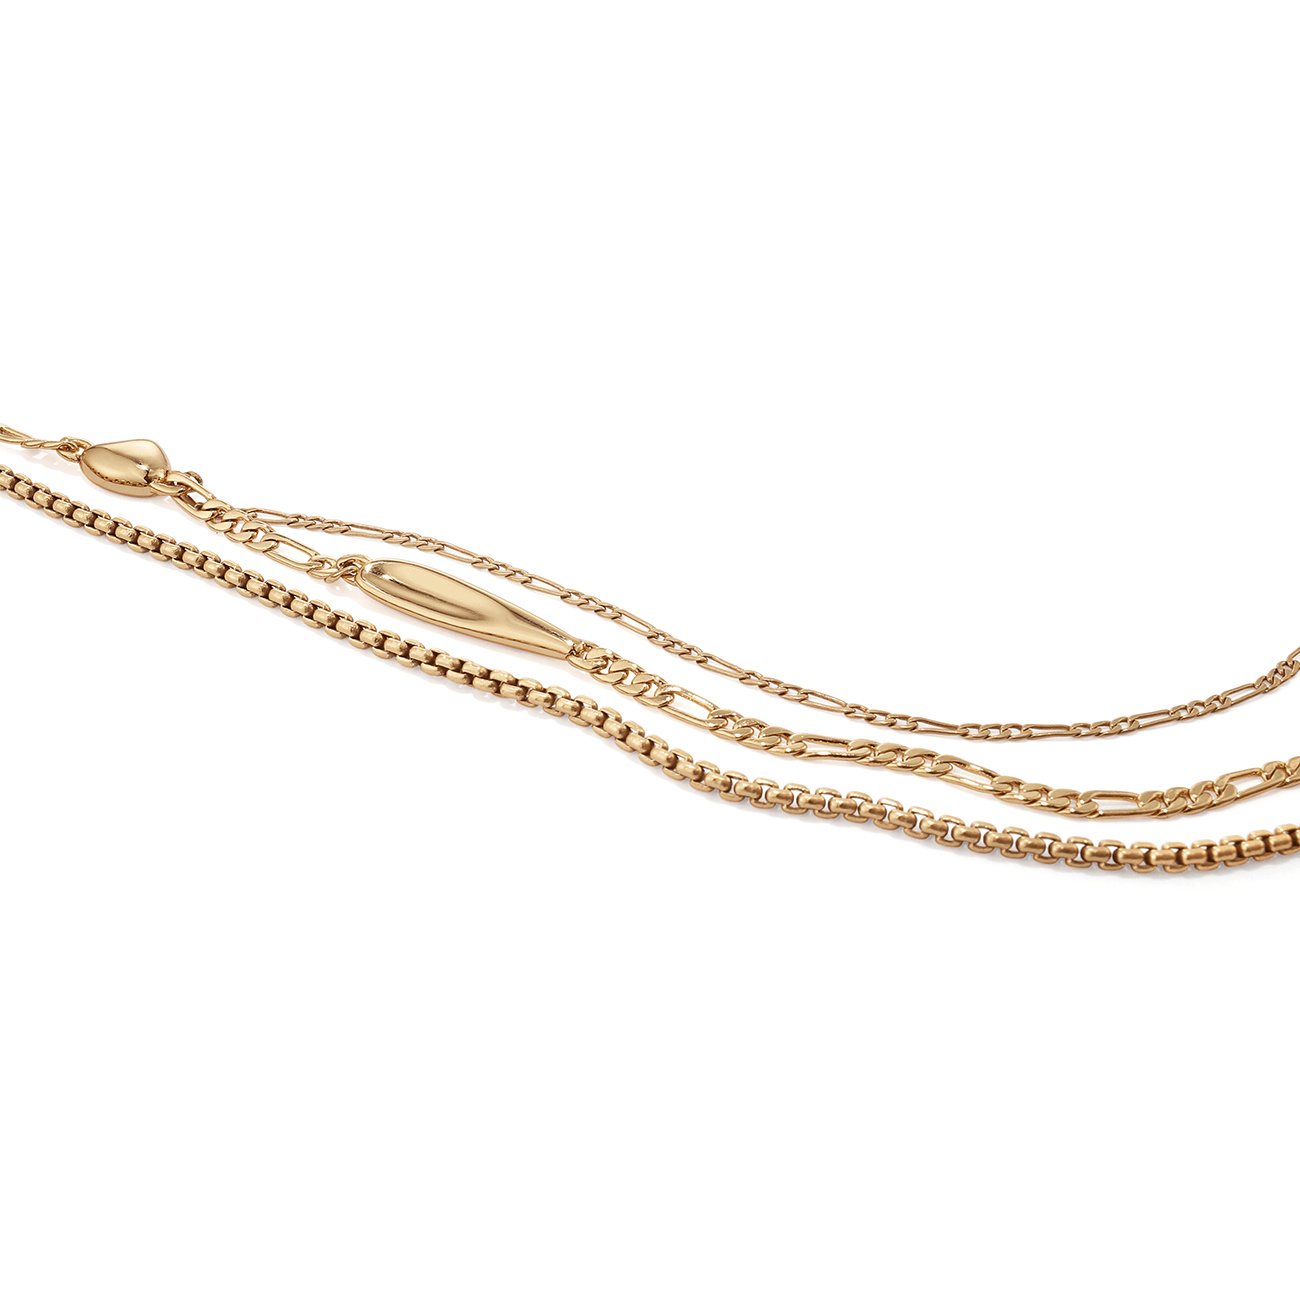 JENNY BIRD - SALENTO NECKLACE IN GOLD